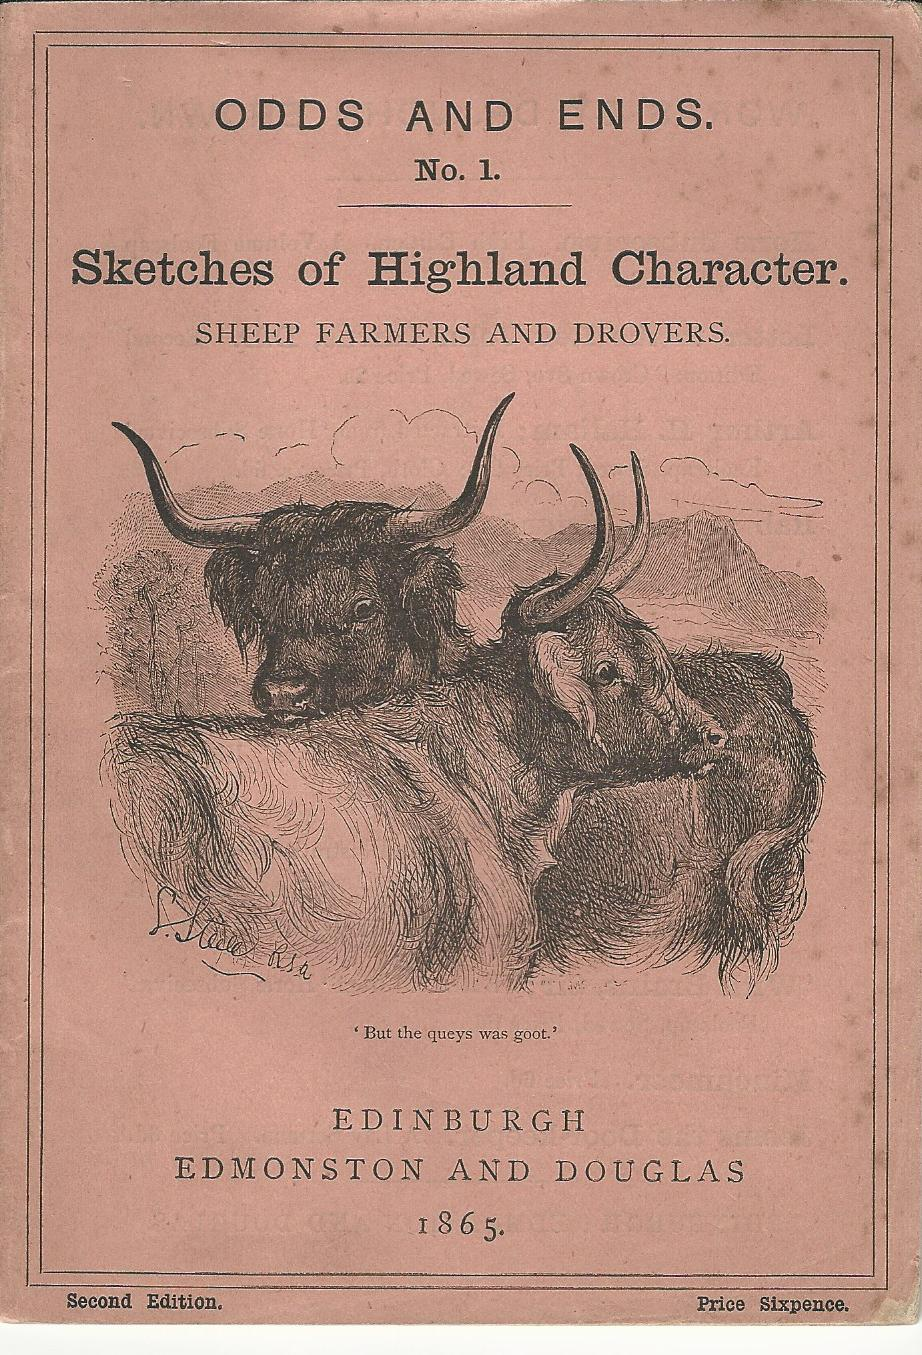 Image for Odds and Ends No.1: Sketches of Highland Character: Sheep Farmers and Drovers